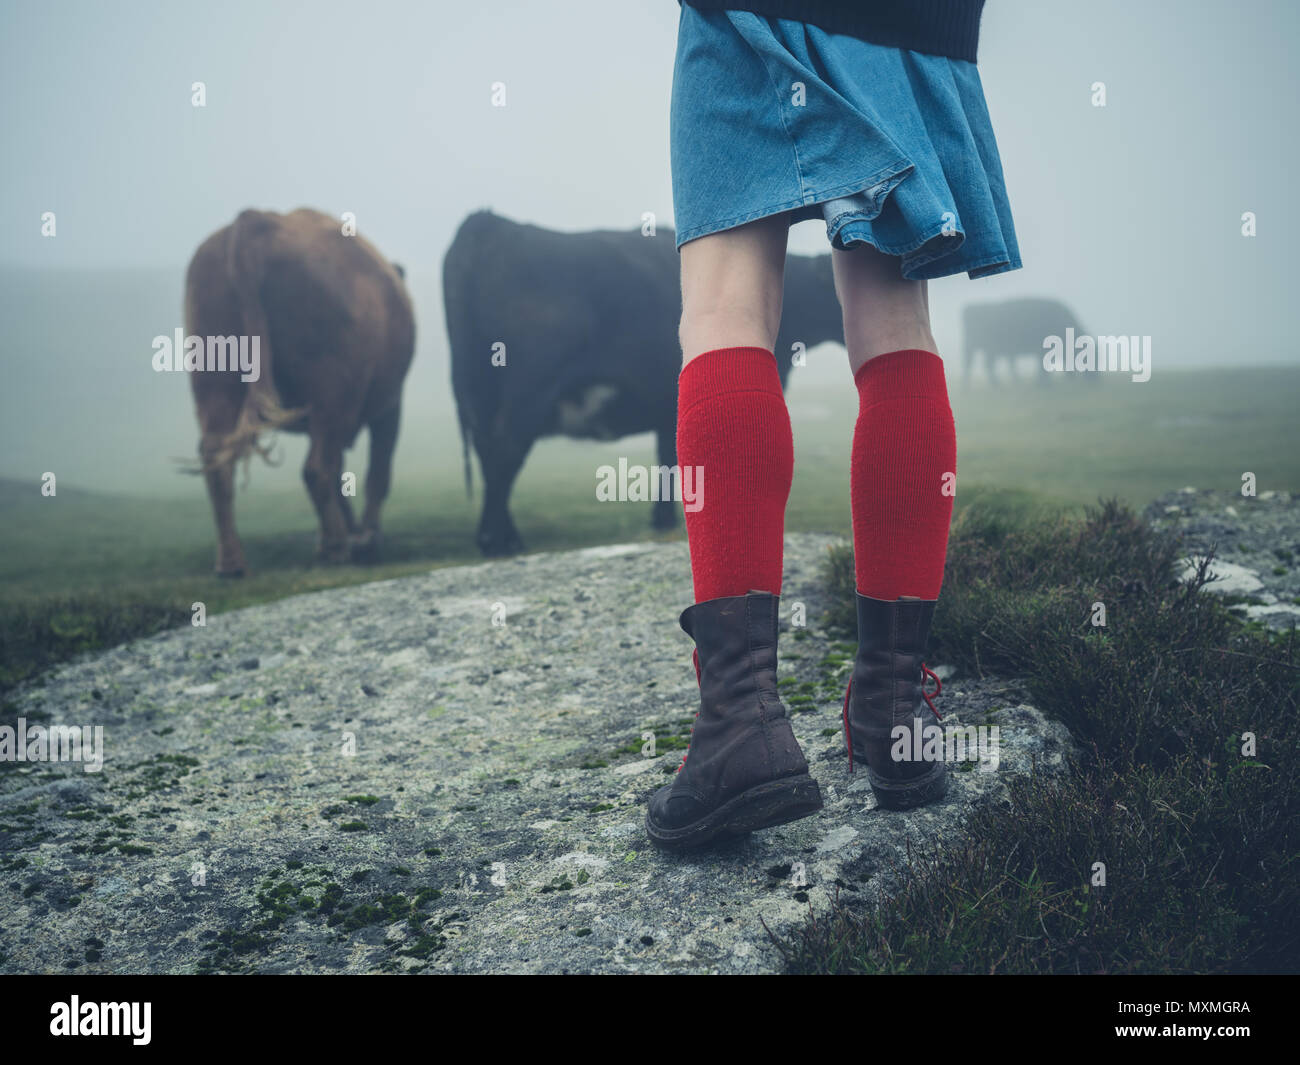 A young woman wearing red socks and hiking boots is walking on the moor in the mist near some cows - Stock Image